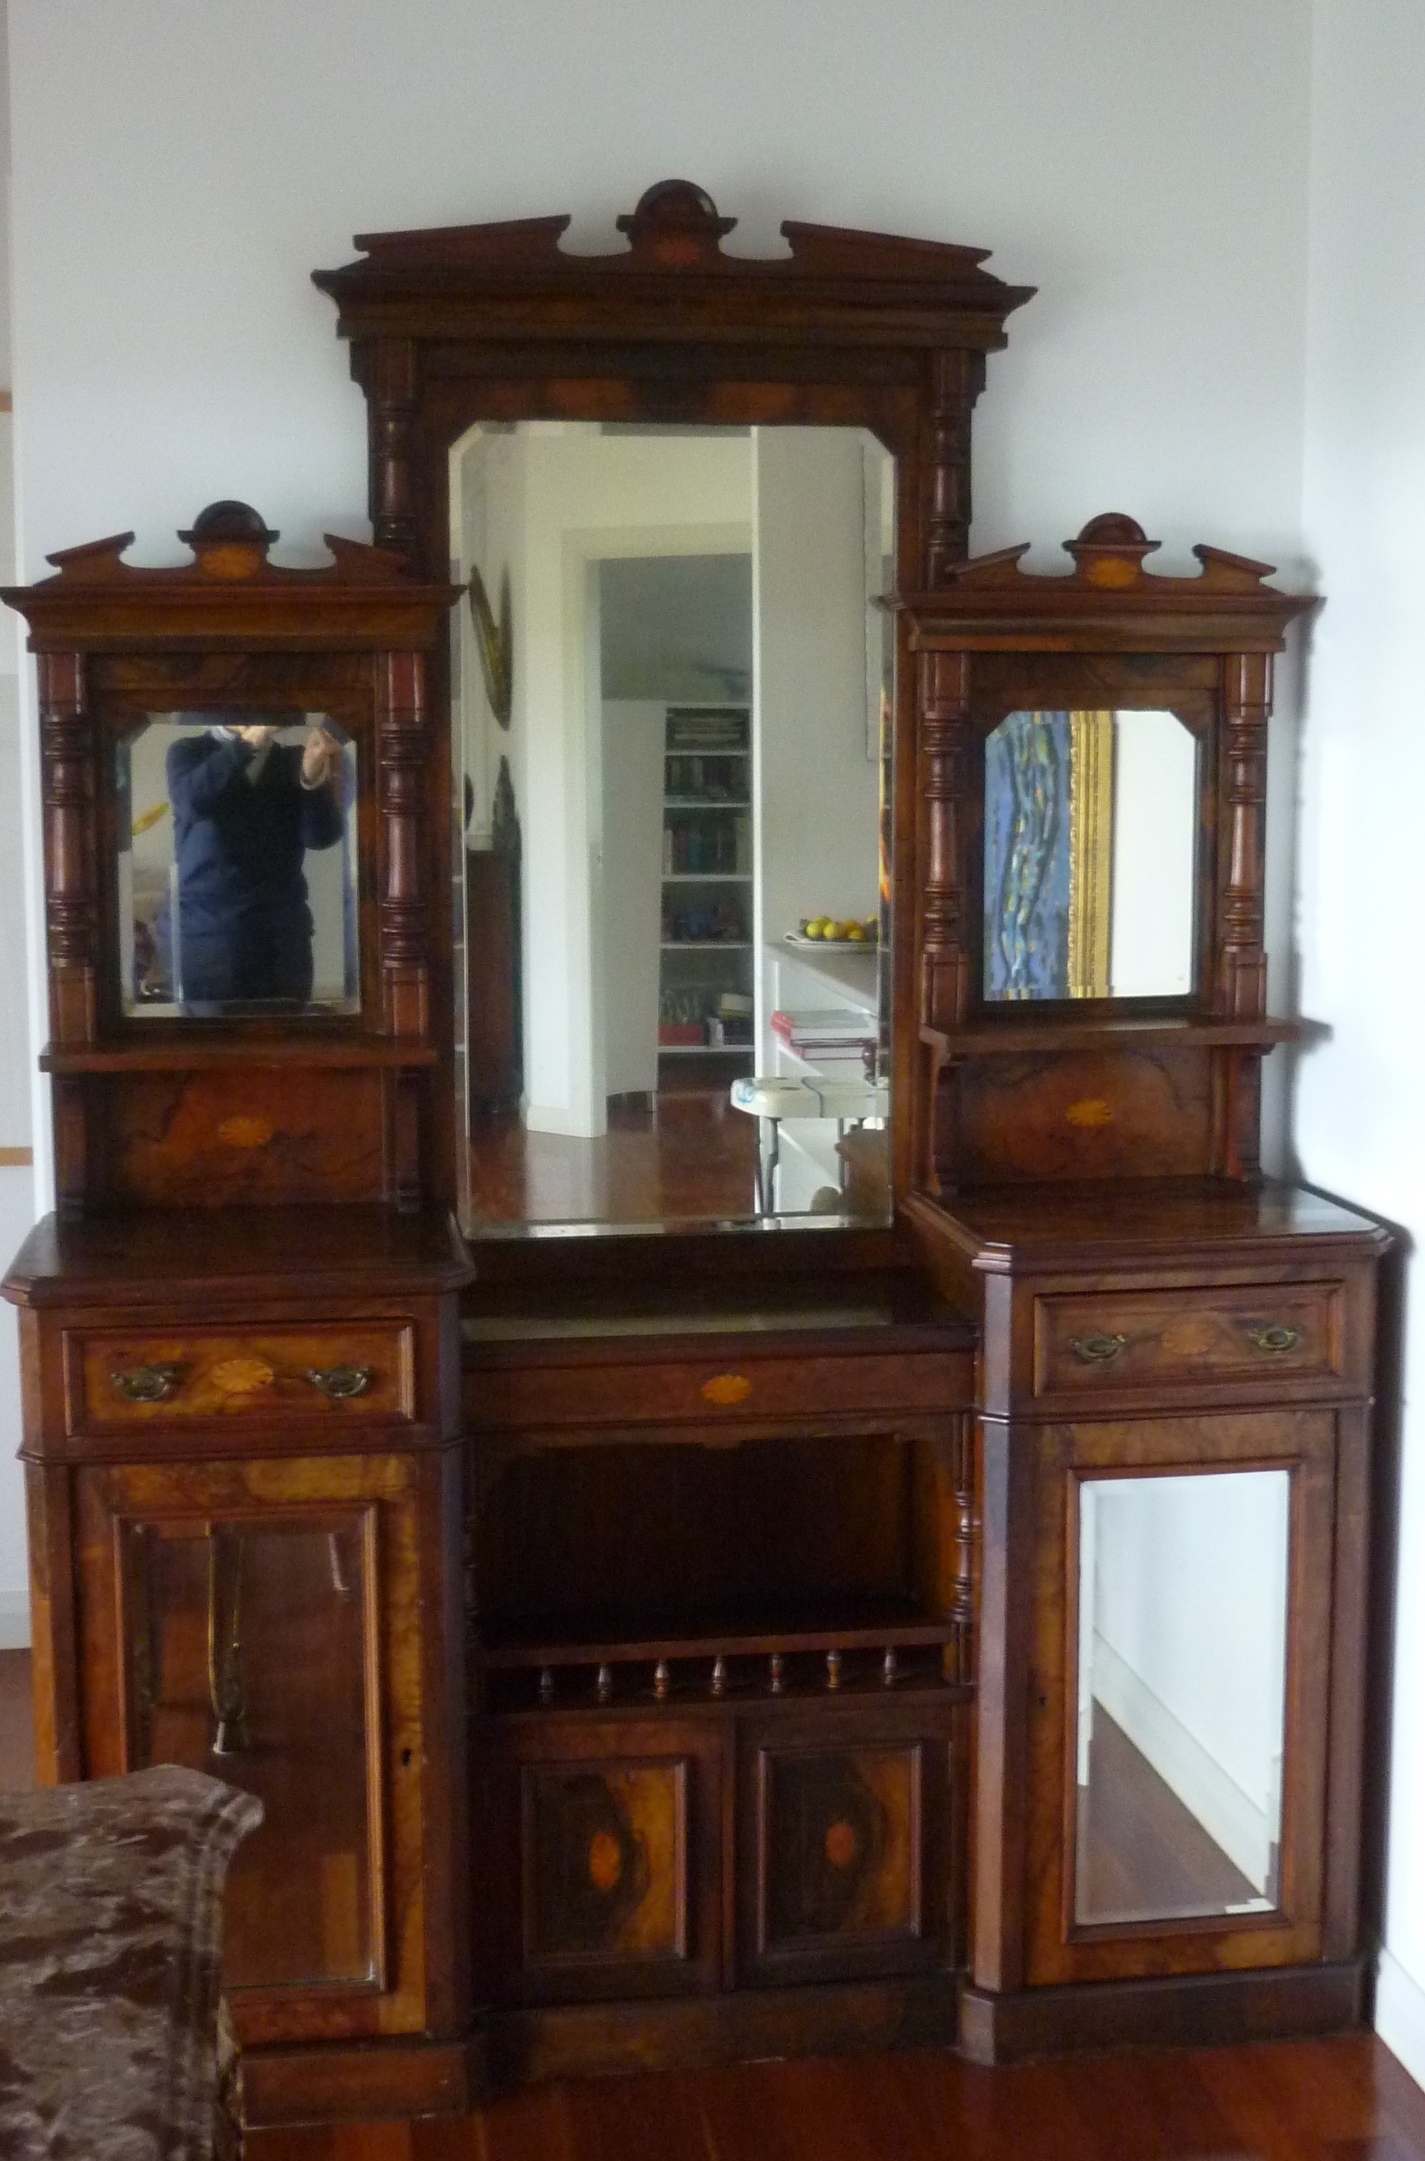 Attractive Rosewood veneer chiffonier with pattern inlay. Can be separated to two pieces for transport. Mirrored, two drawers, lower shelves. approx. 220cm tall. Some marks and damage to baseboard panel.